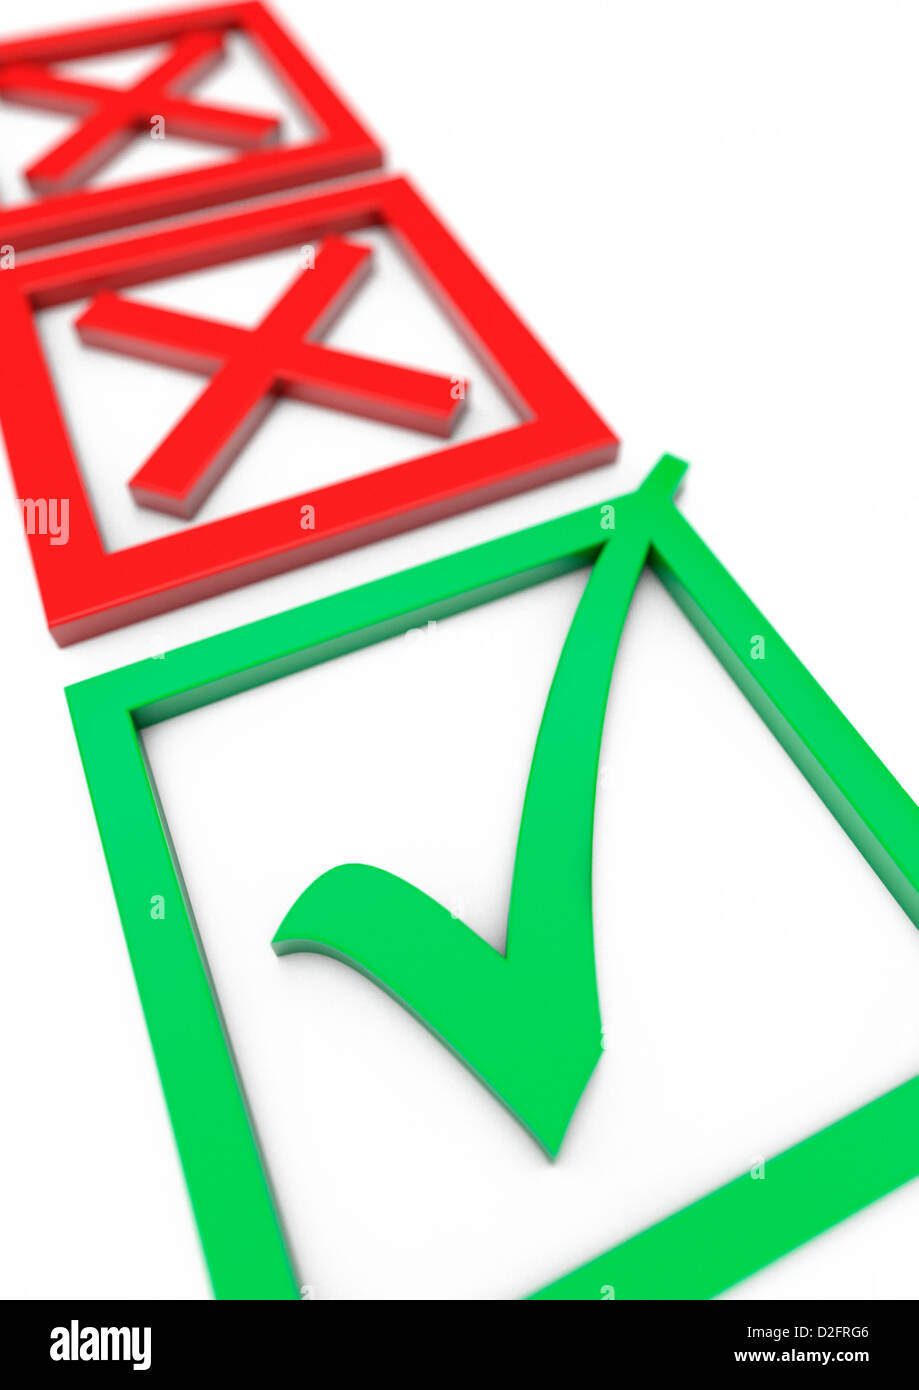 Voting slip or approval concept with two red crosses in the background and a green tick check mark in the foreground - Stock Image